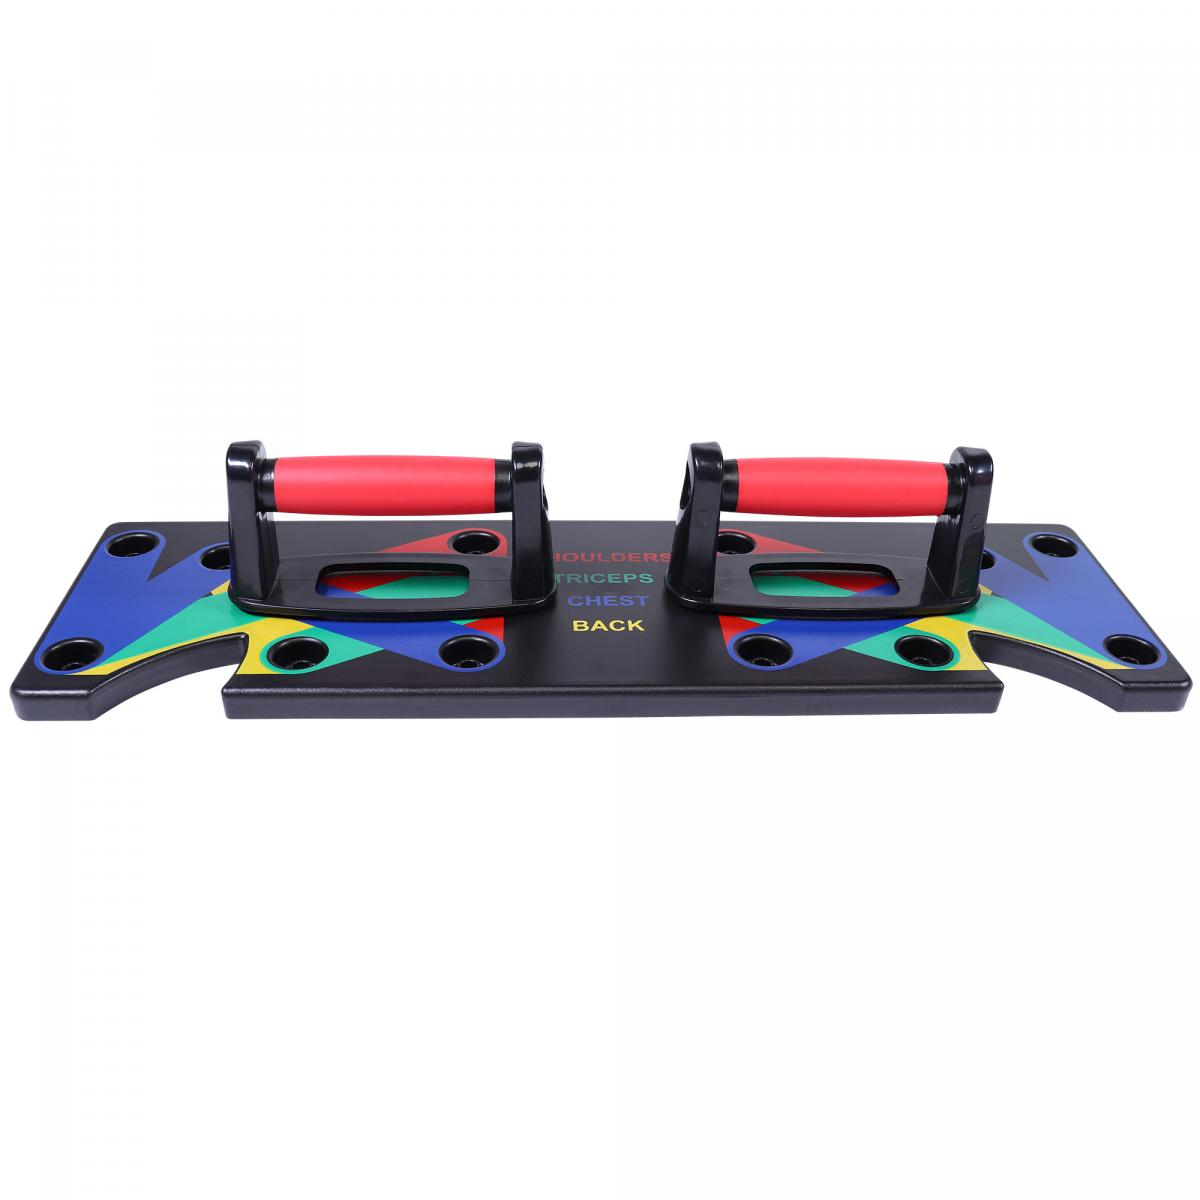 Gorilla Sports Push Up Board / Liegestützbrett 101121-00001-0001